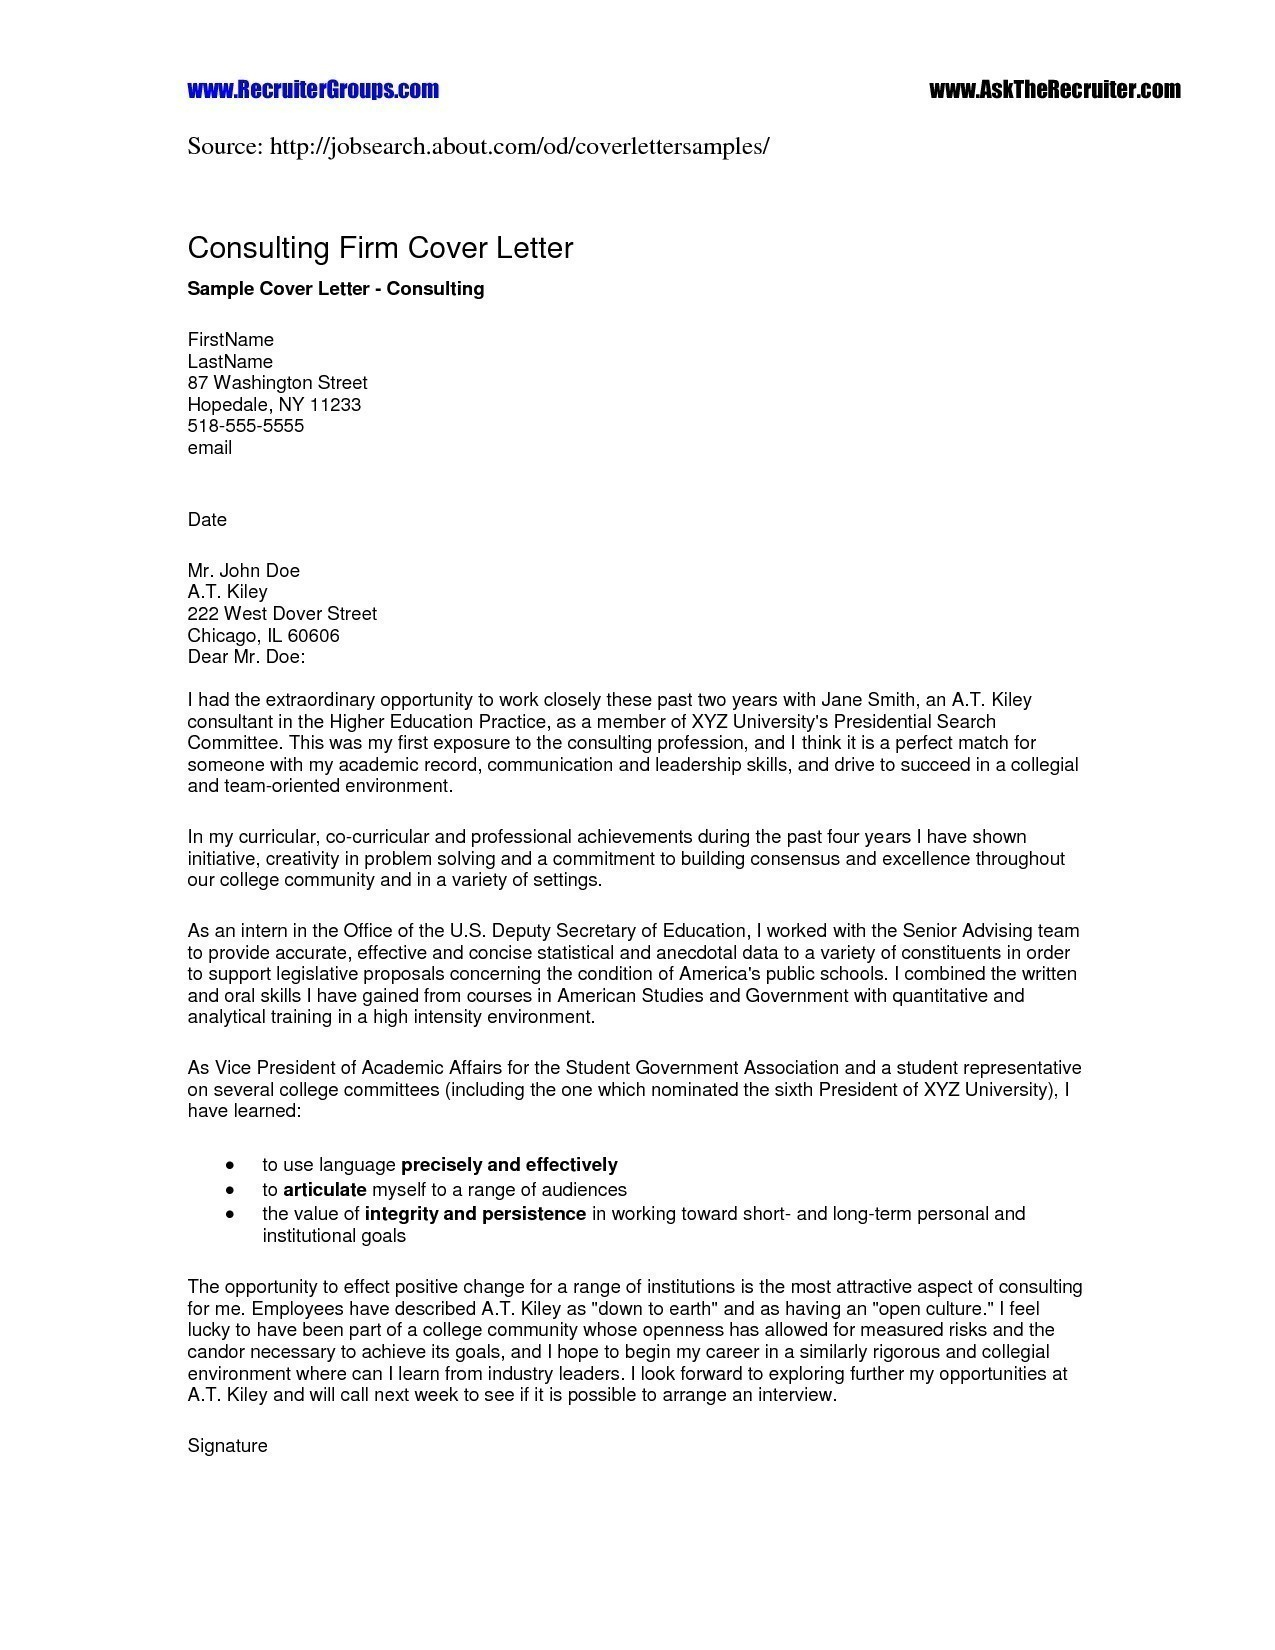 Free Offer Letter Template - How to Write Job Fer Letter Fresh Job Fer Letter Sample Best Job